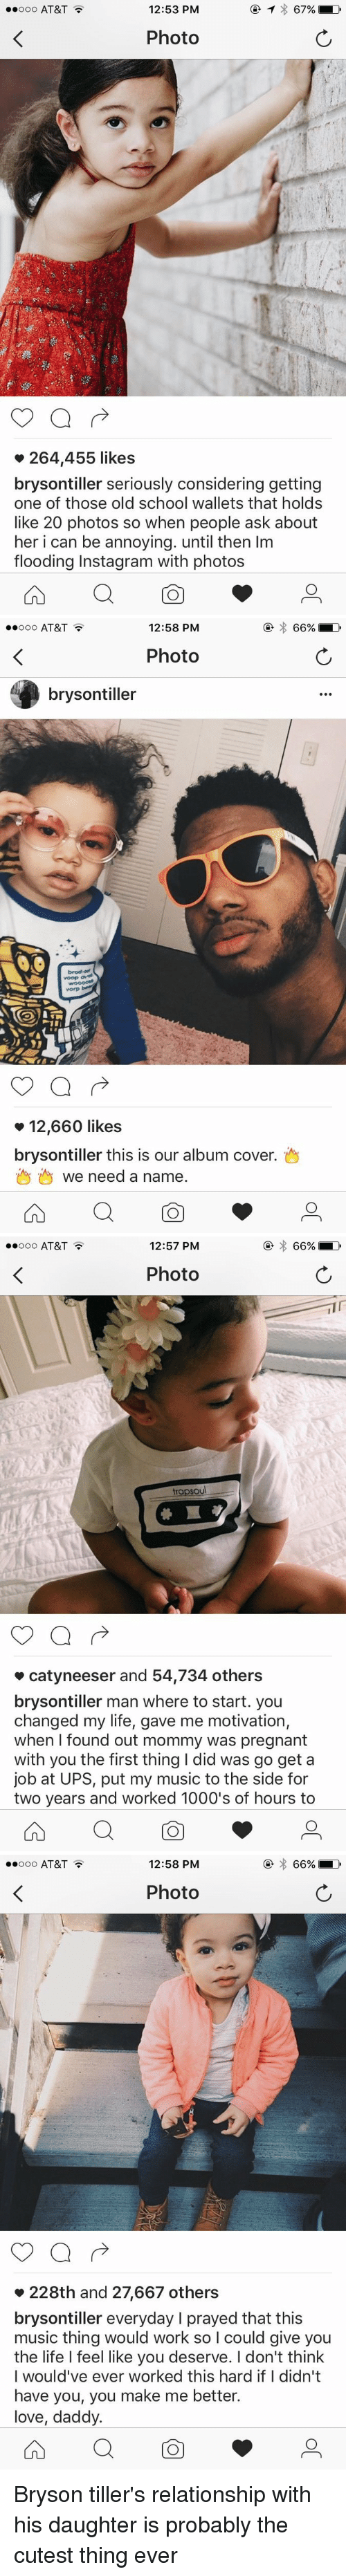 Bryson Tiller, Instagram, and Life: ooo AT&T  12:53 PM  Photo  264,455 likes  brysontiller seriously considering getting  one of those old school wallets that holds  like 20 photos so when people ask about  her i can be annoying. until then lm  flooding Instagram with photos   ooo AT&T  12:58 PM  Photo  brysontiller  voop om  vorp  12,660 likes  brysontiller this is our album cover.  we need a name  66% LD   12:57 PM  66% LD  ooo AT&T  Photo  trapsoul  catyneeser and 54,734 others  brysontiller man where to start. you  changed my life, gave me motivation,  when I found out mommy was pregnant  with you the first thing I did was go get a  job at UPS, put my music to the side for  two years and worked 1000's of hours to   12:58 PM  ooo AT&T  66% LD  Photo  228th and 27,667 others  brysontiller everyday l prayed that this  music thing would work so l could give you  the life I feel like you deserve. l don't think  I would've ever worked this hard if I didn't  have you, you make me better.  love, daddy. Bryson tiller's relationship with his daughter is probably the cutest thing ever